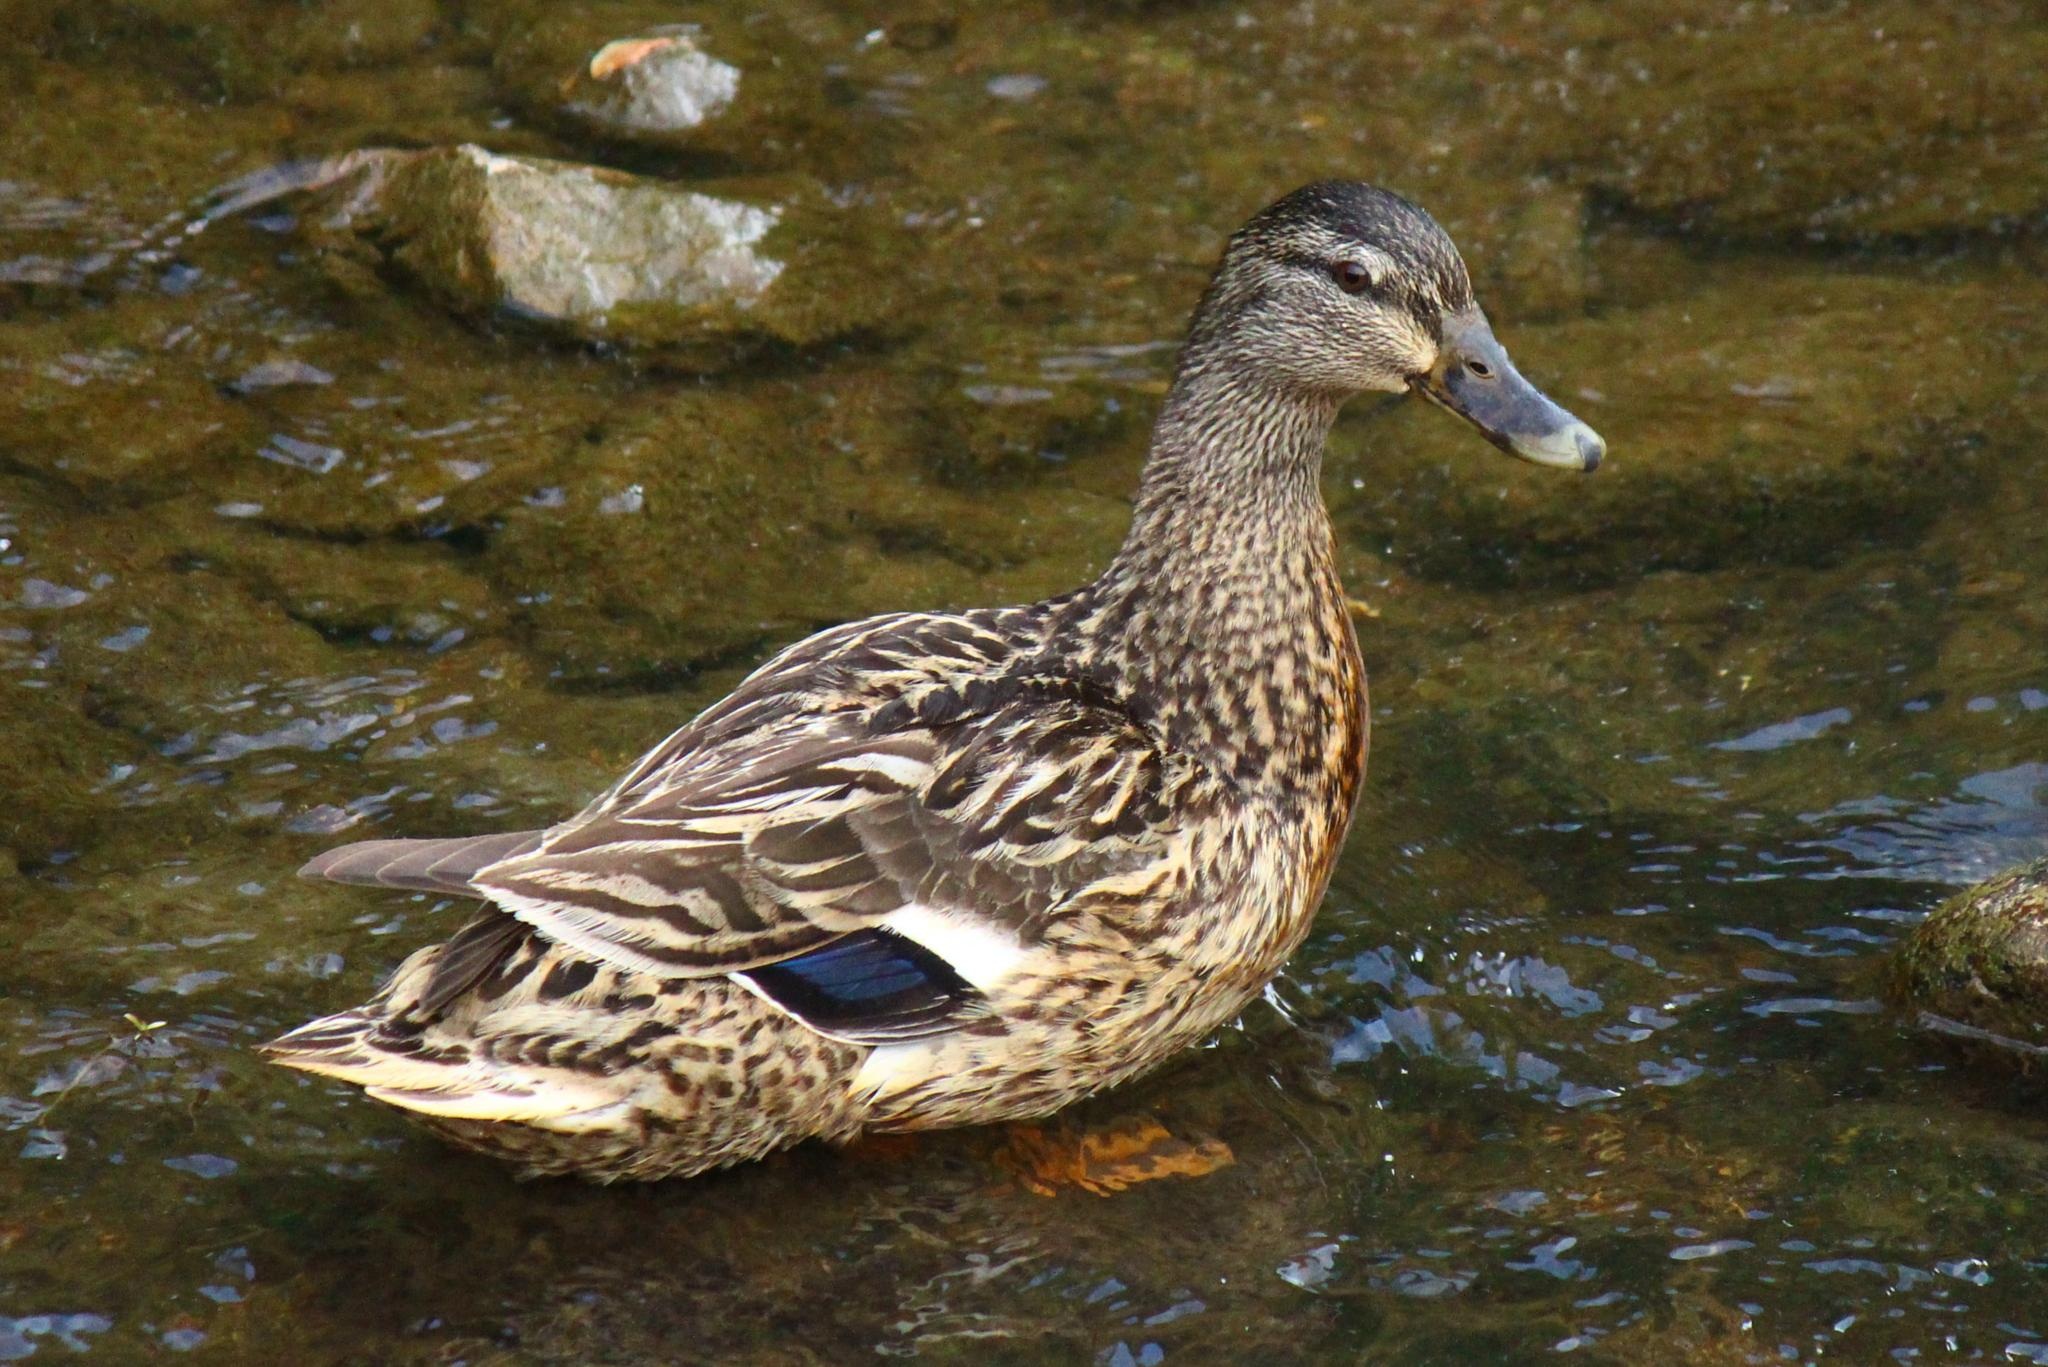 Duck wading in the creek by Clark L. Roberts